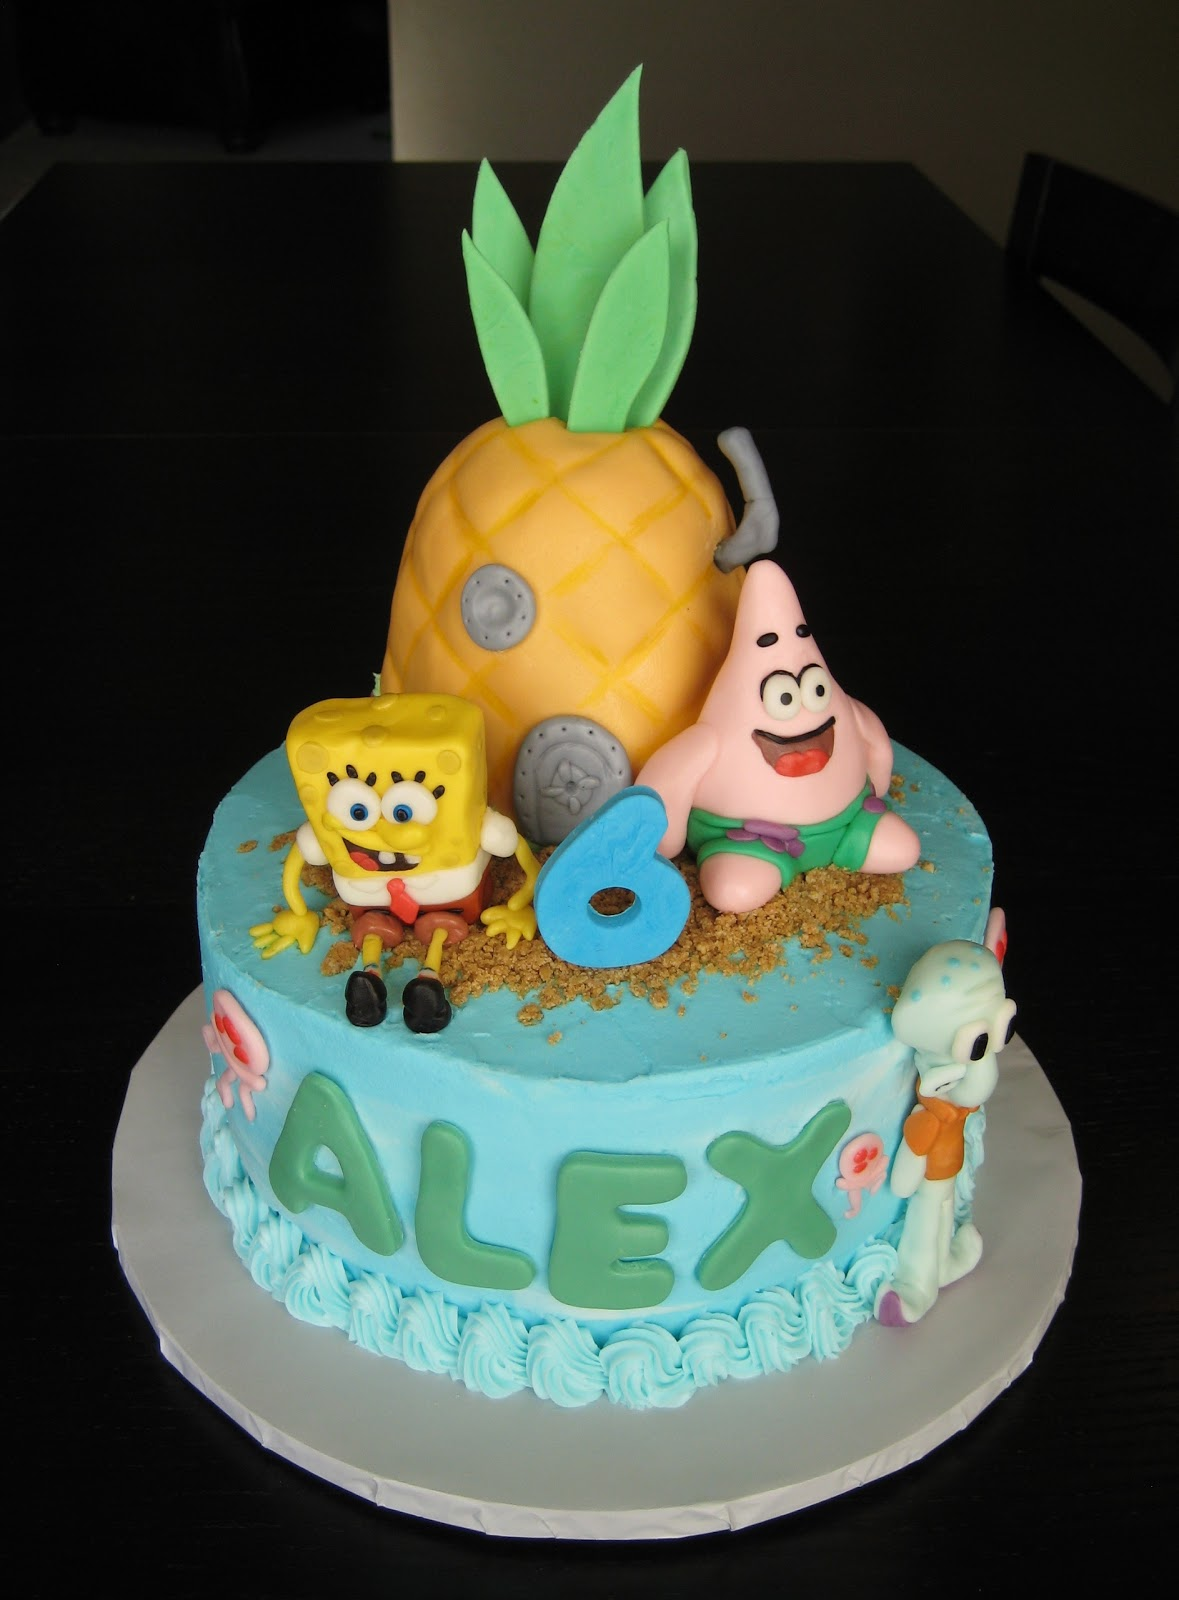 Spongebob Cake Decorations Uk